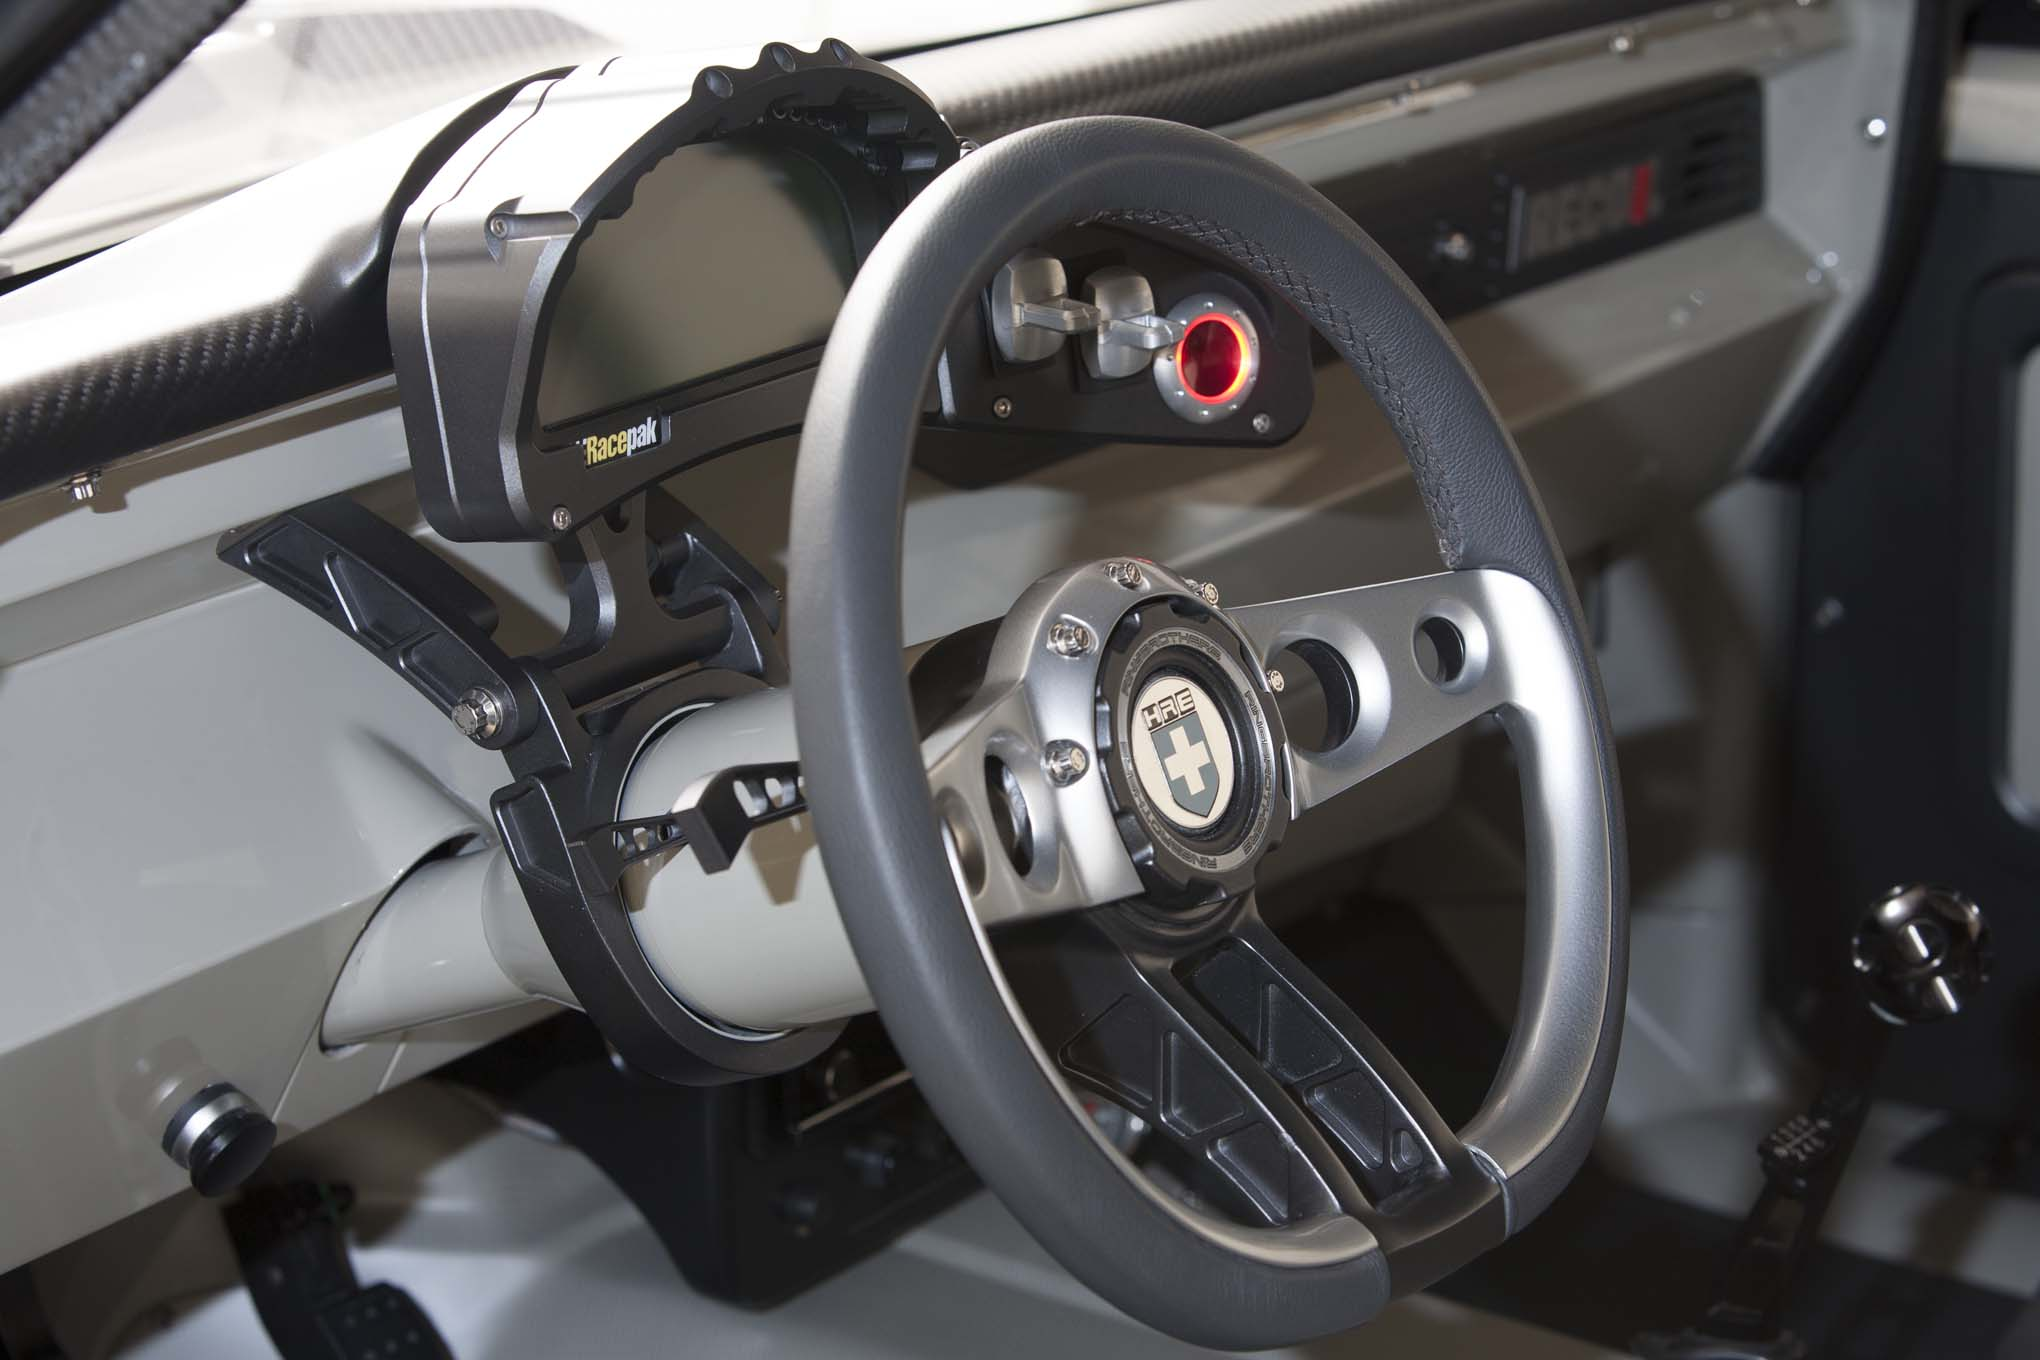 The custom steering wheel built by Ringbrothers uses parts from its billet hood hinge lineup, the glowing start button is theirs as well. All engine data is efficiently displayed on the Racepak, keeping the driver informed with one glance.